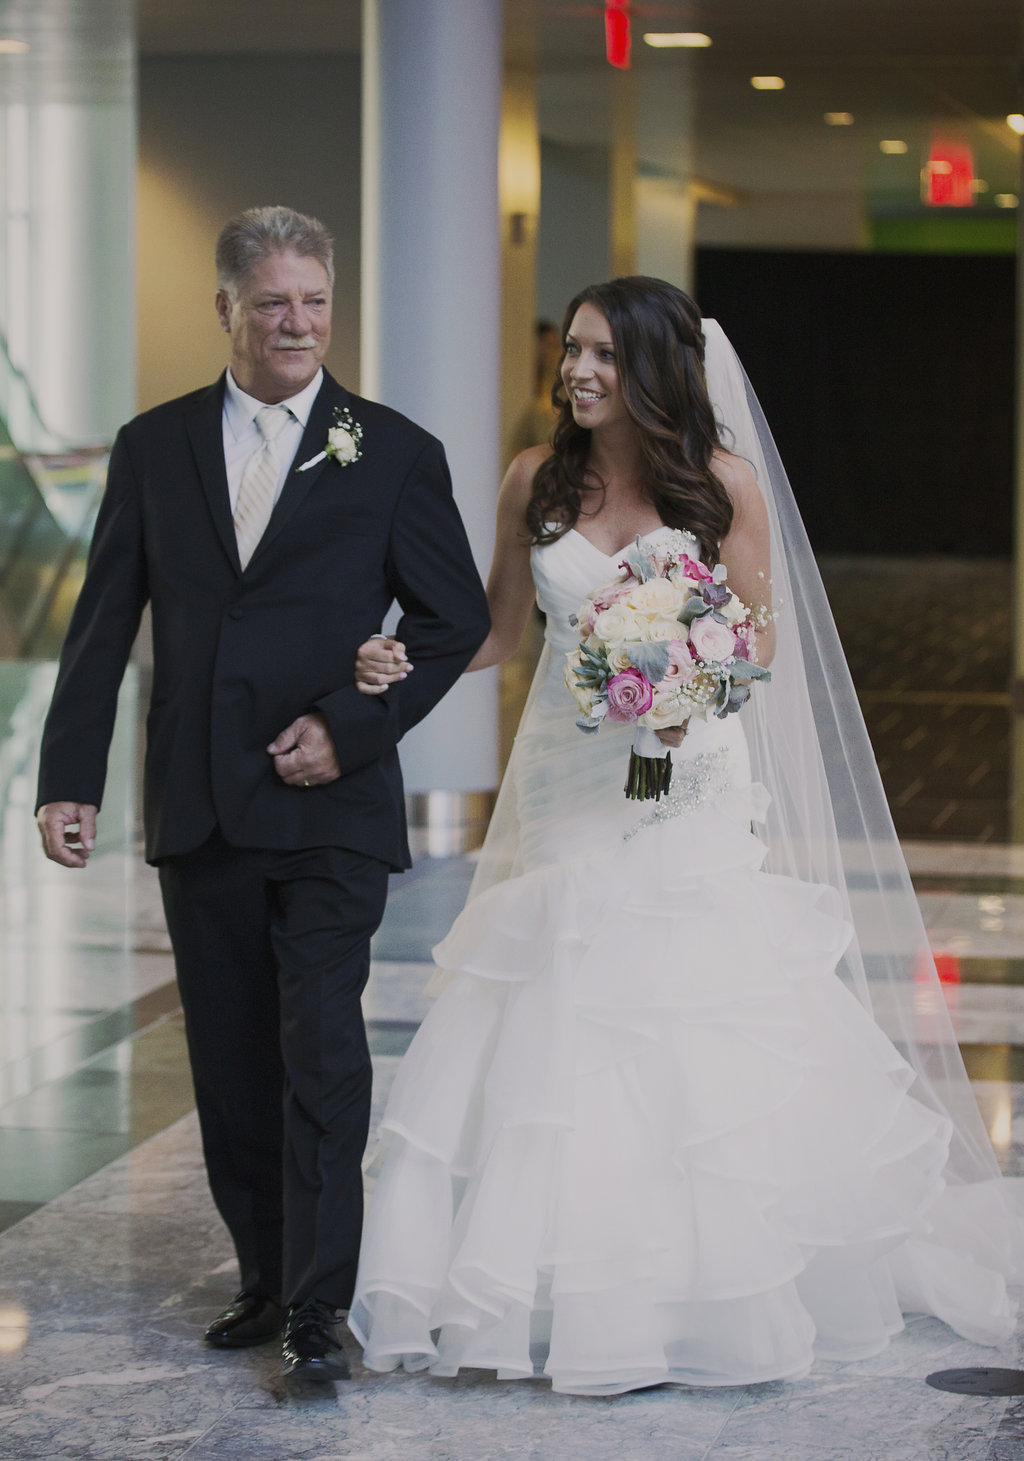 Bride and father walking down the aisle during a beautiful wedding ceremony at Founders Hall.